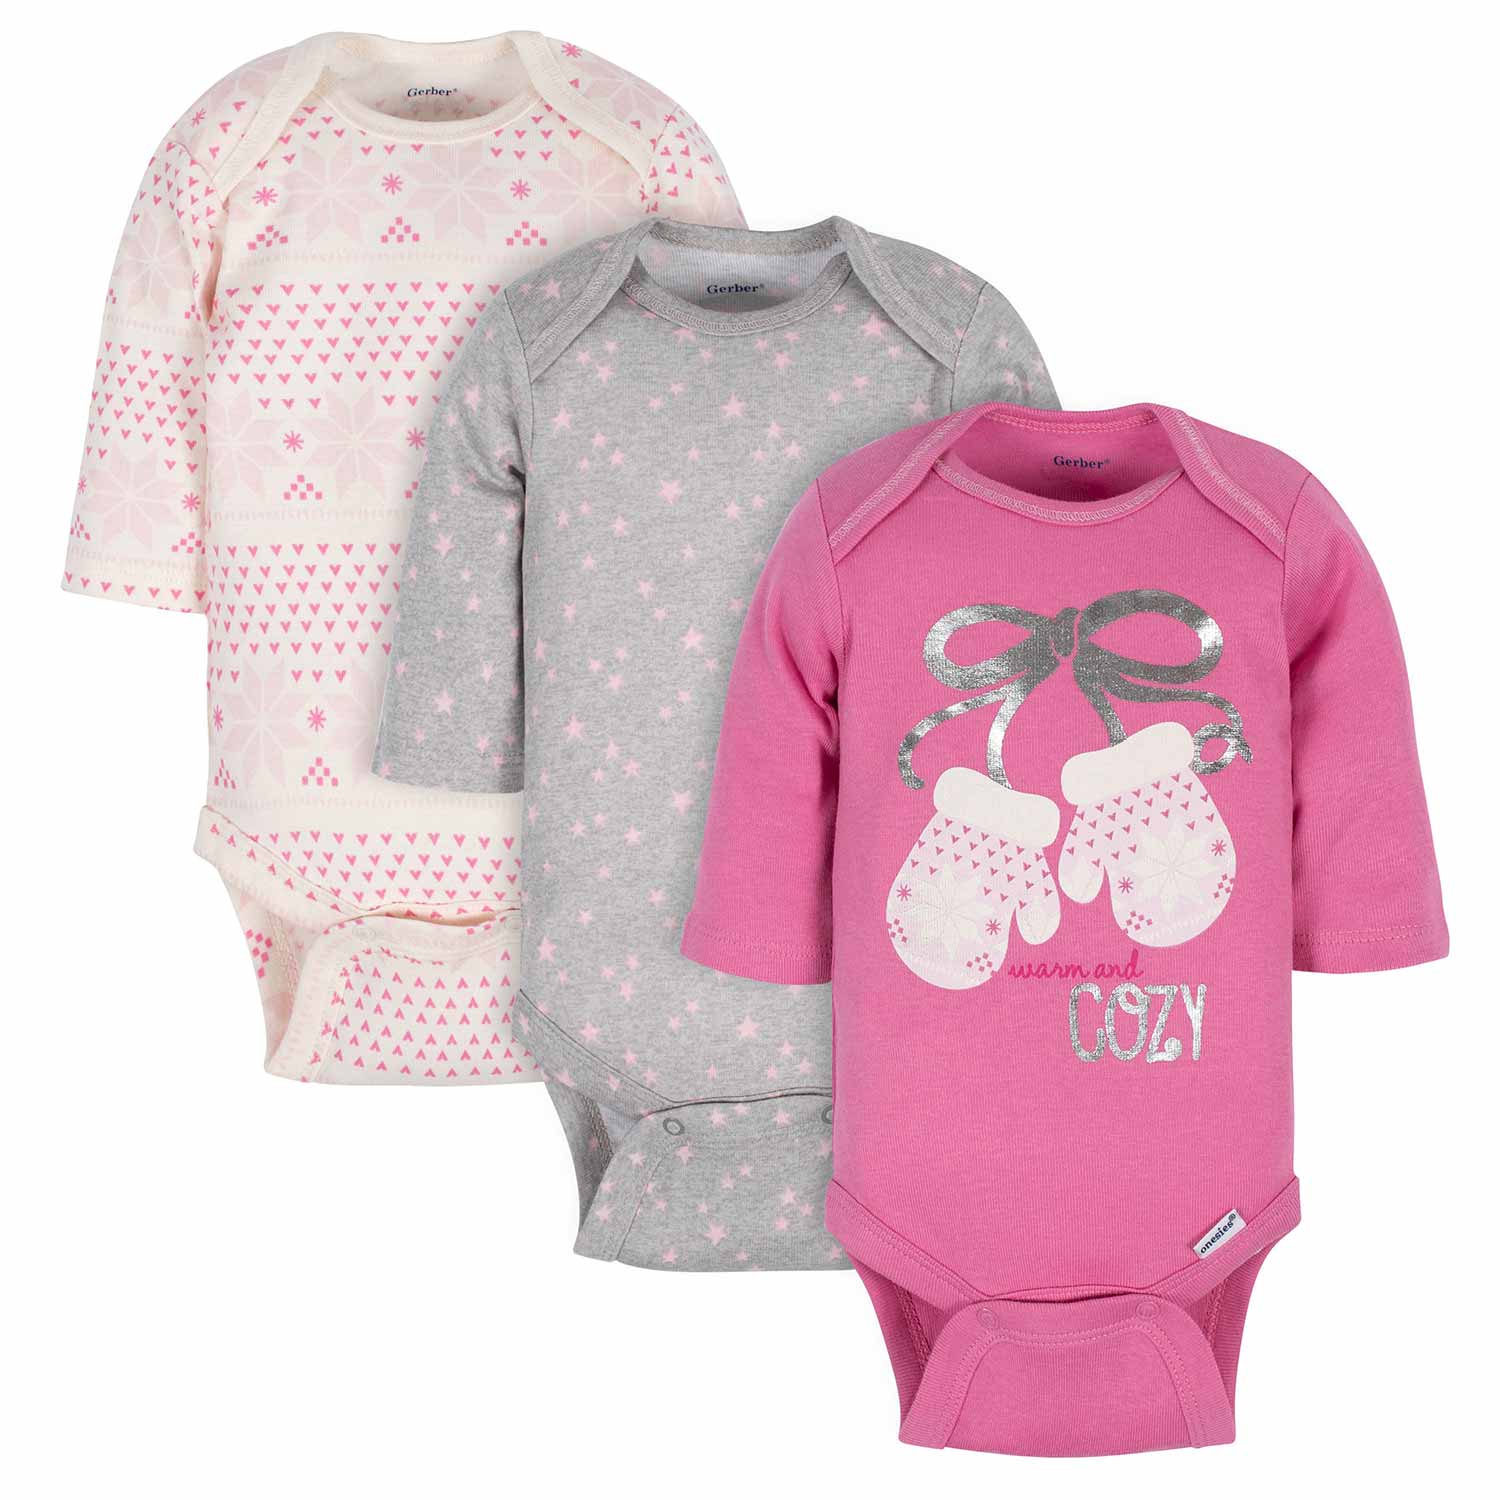 Gerber® 3-Pack Baby Girls Cozy Winter Long Sleeve Onesies® Bodysuits